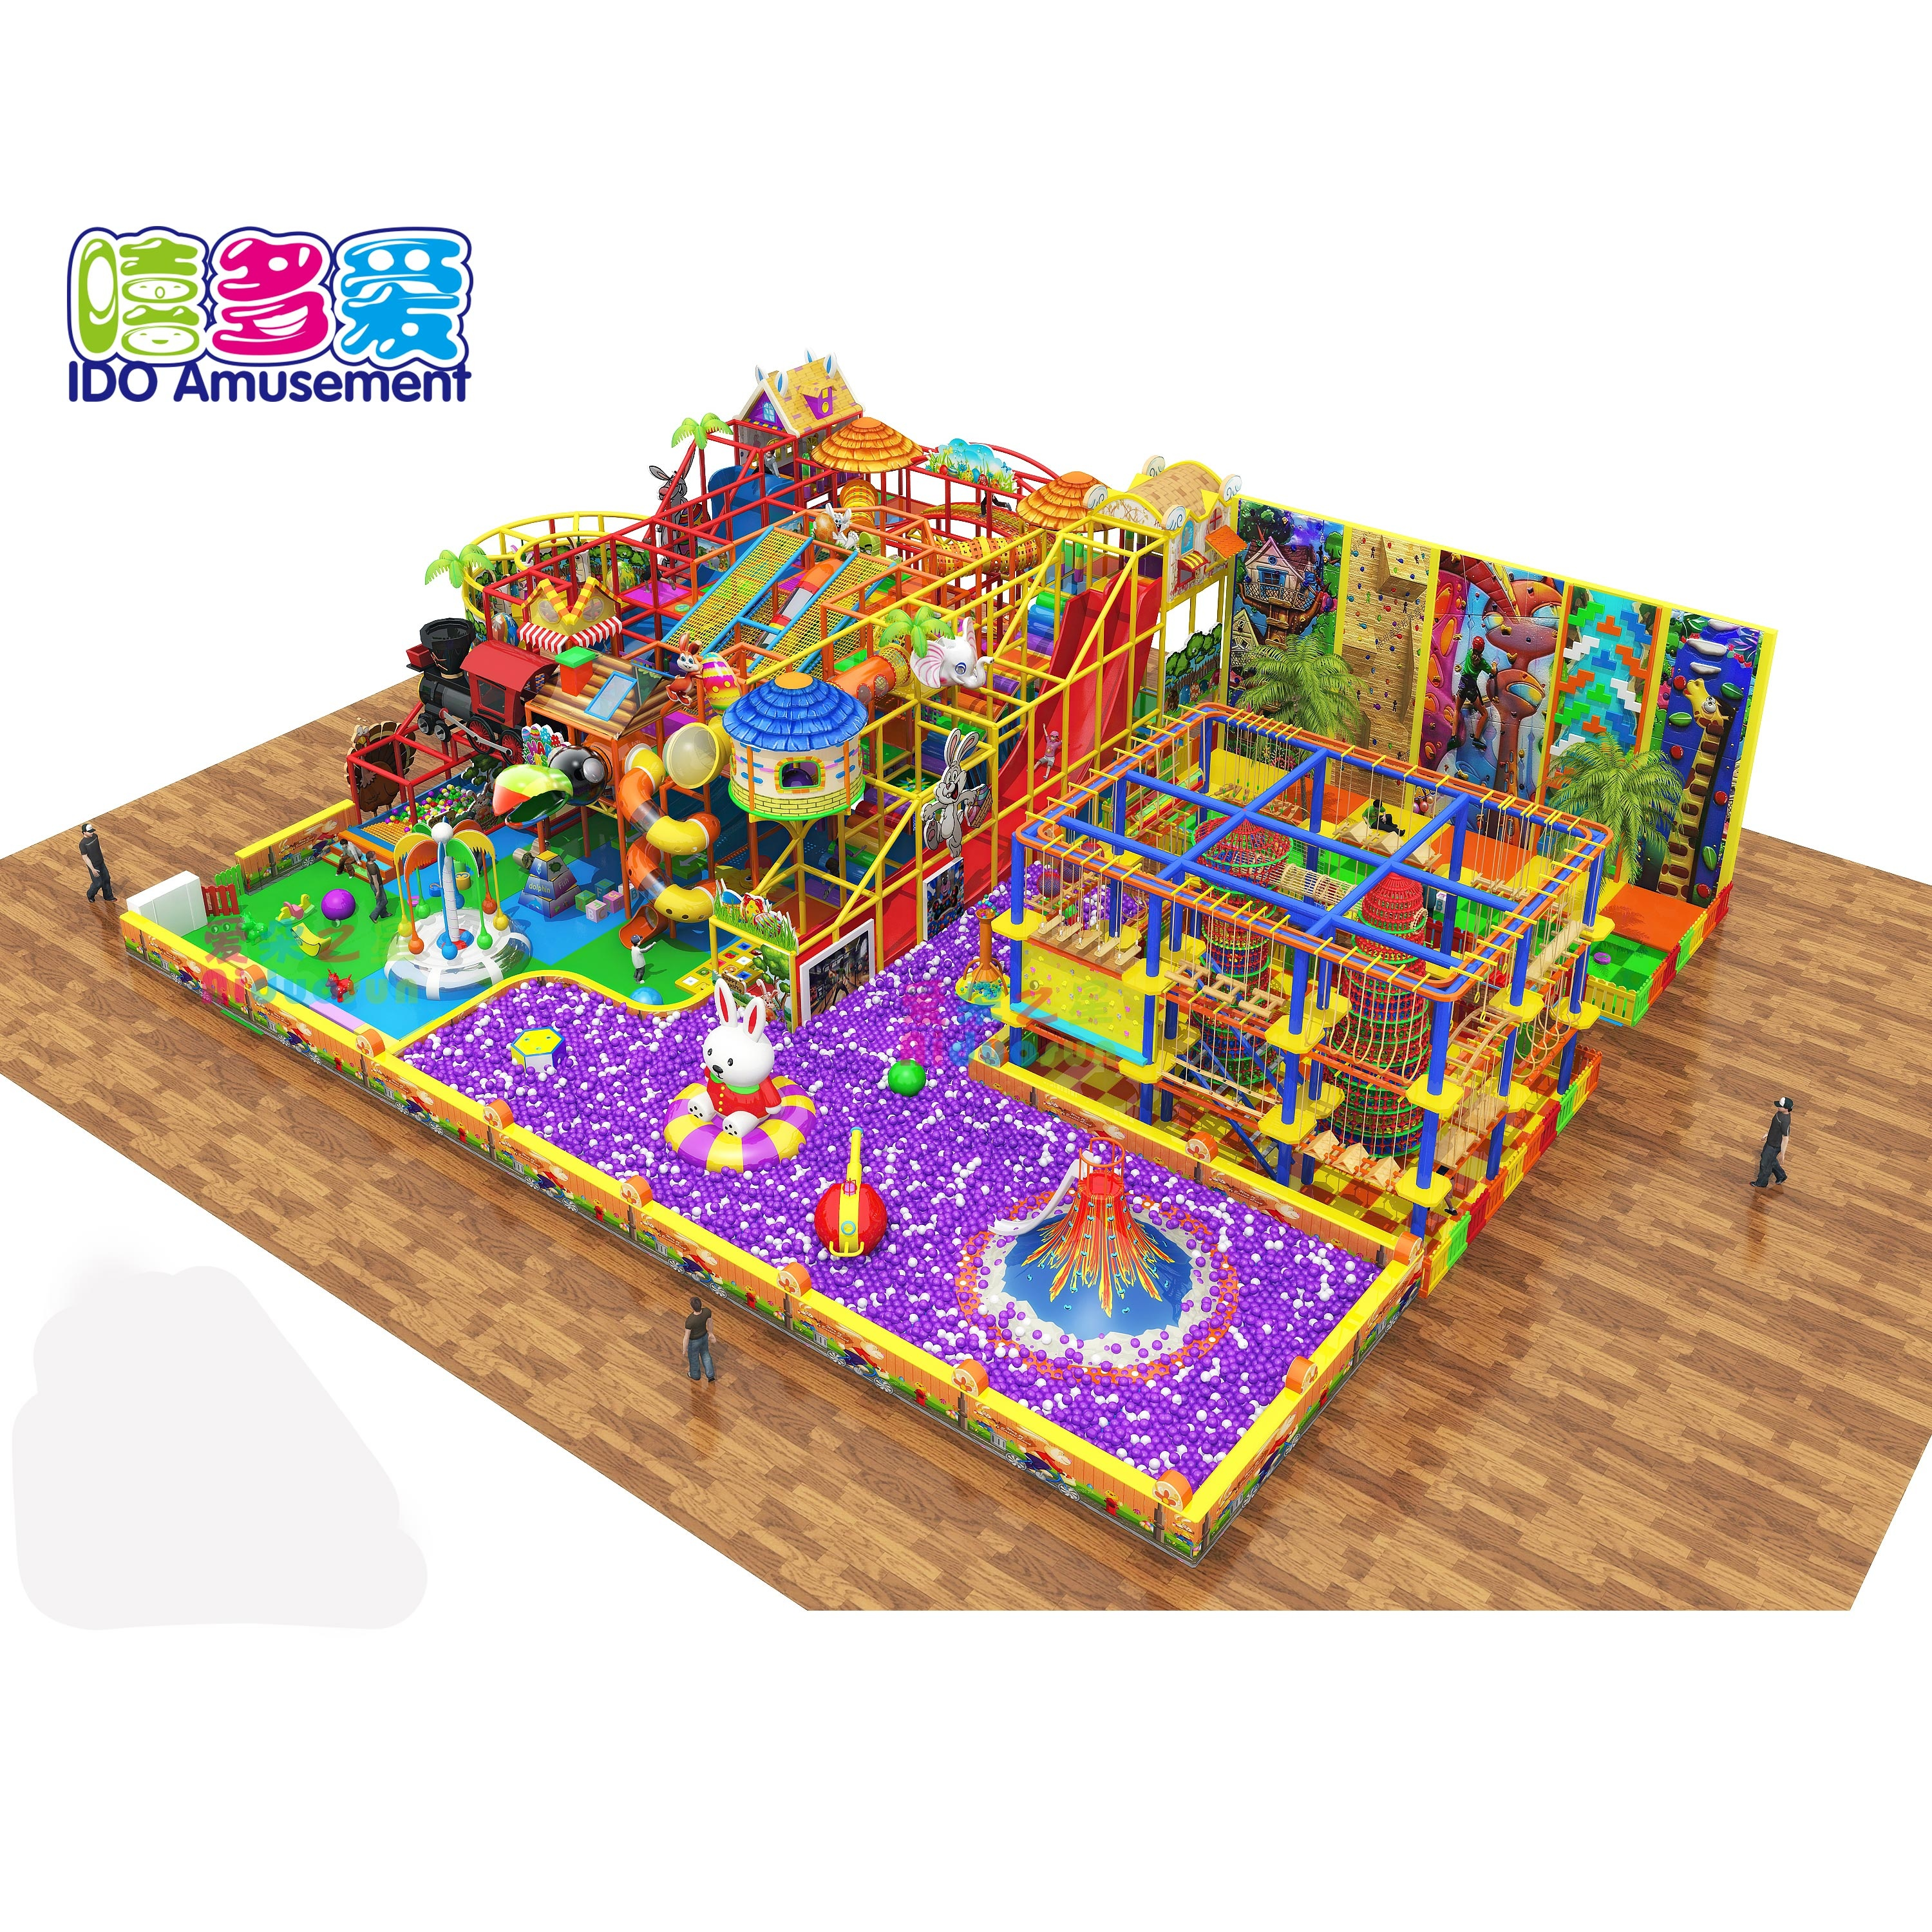 2019 Customized Hot Selling Circus Theme Toddler Playland Cartoon Indoor Playground Equipment